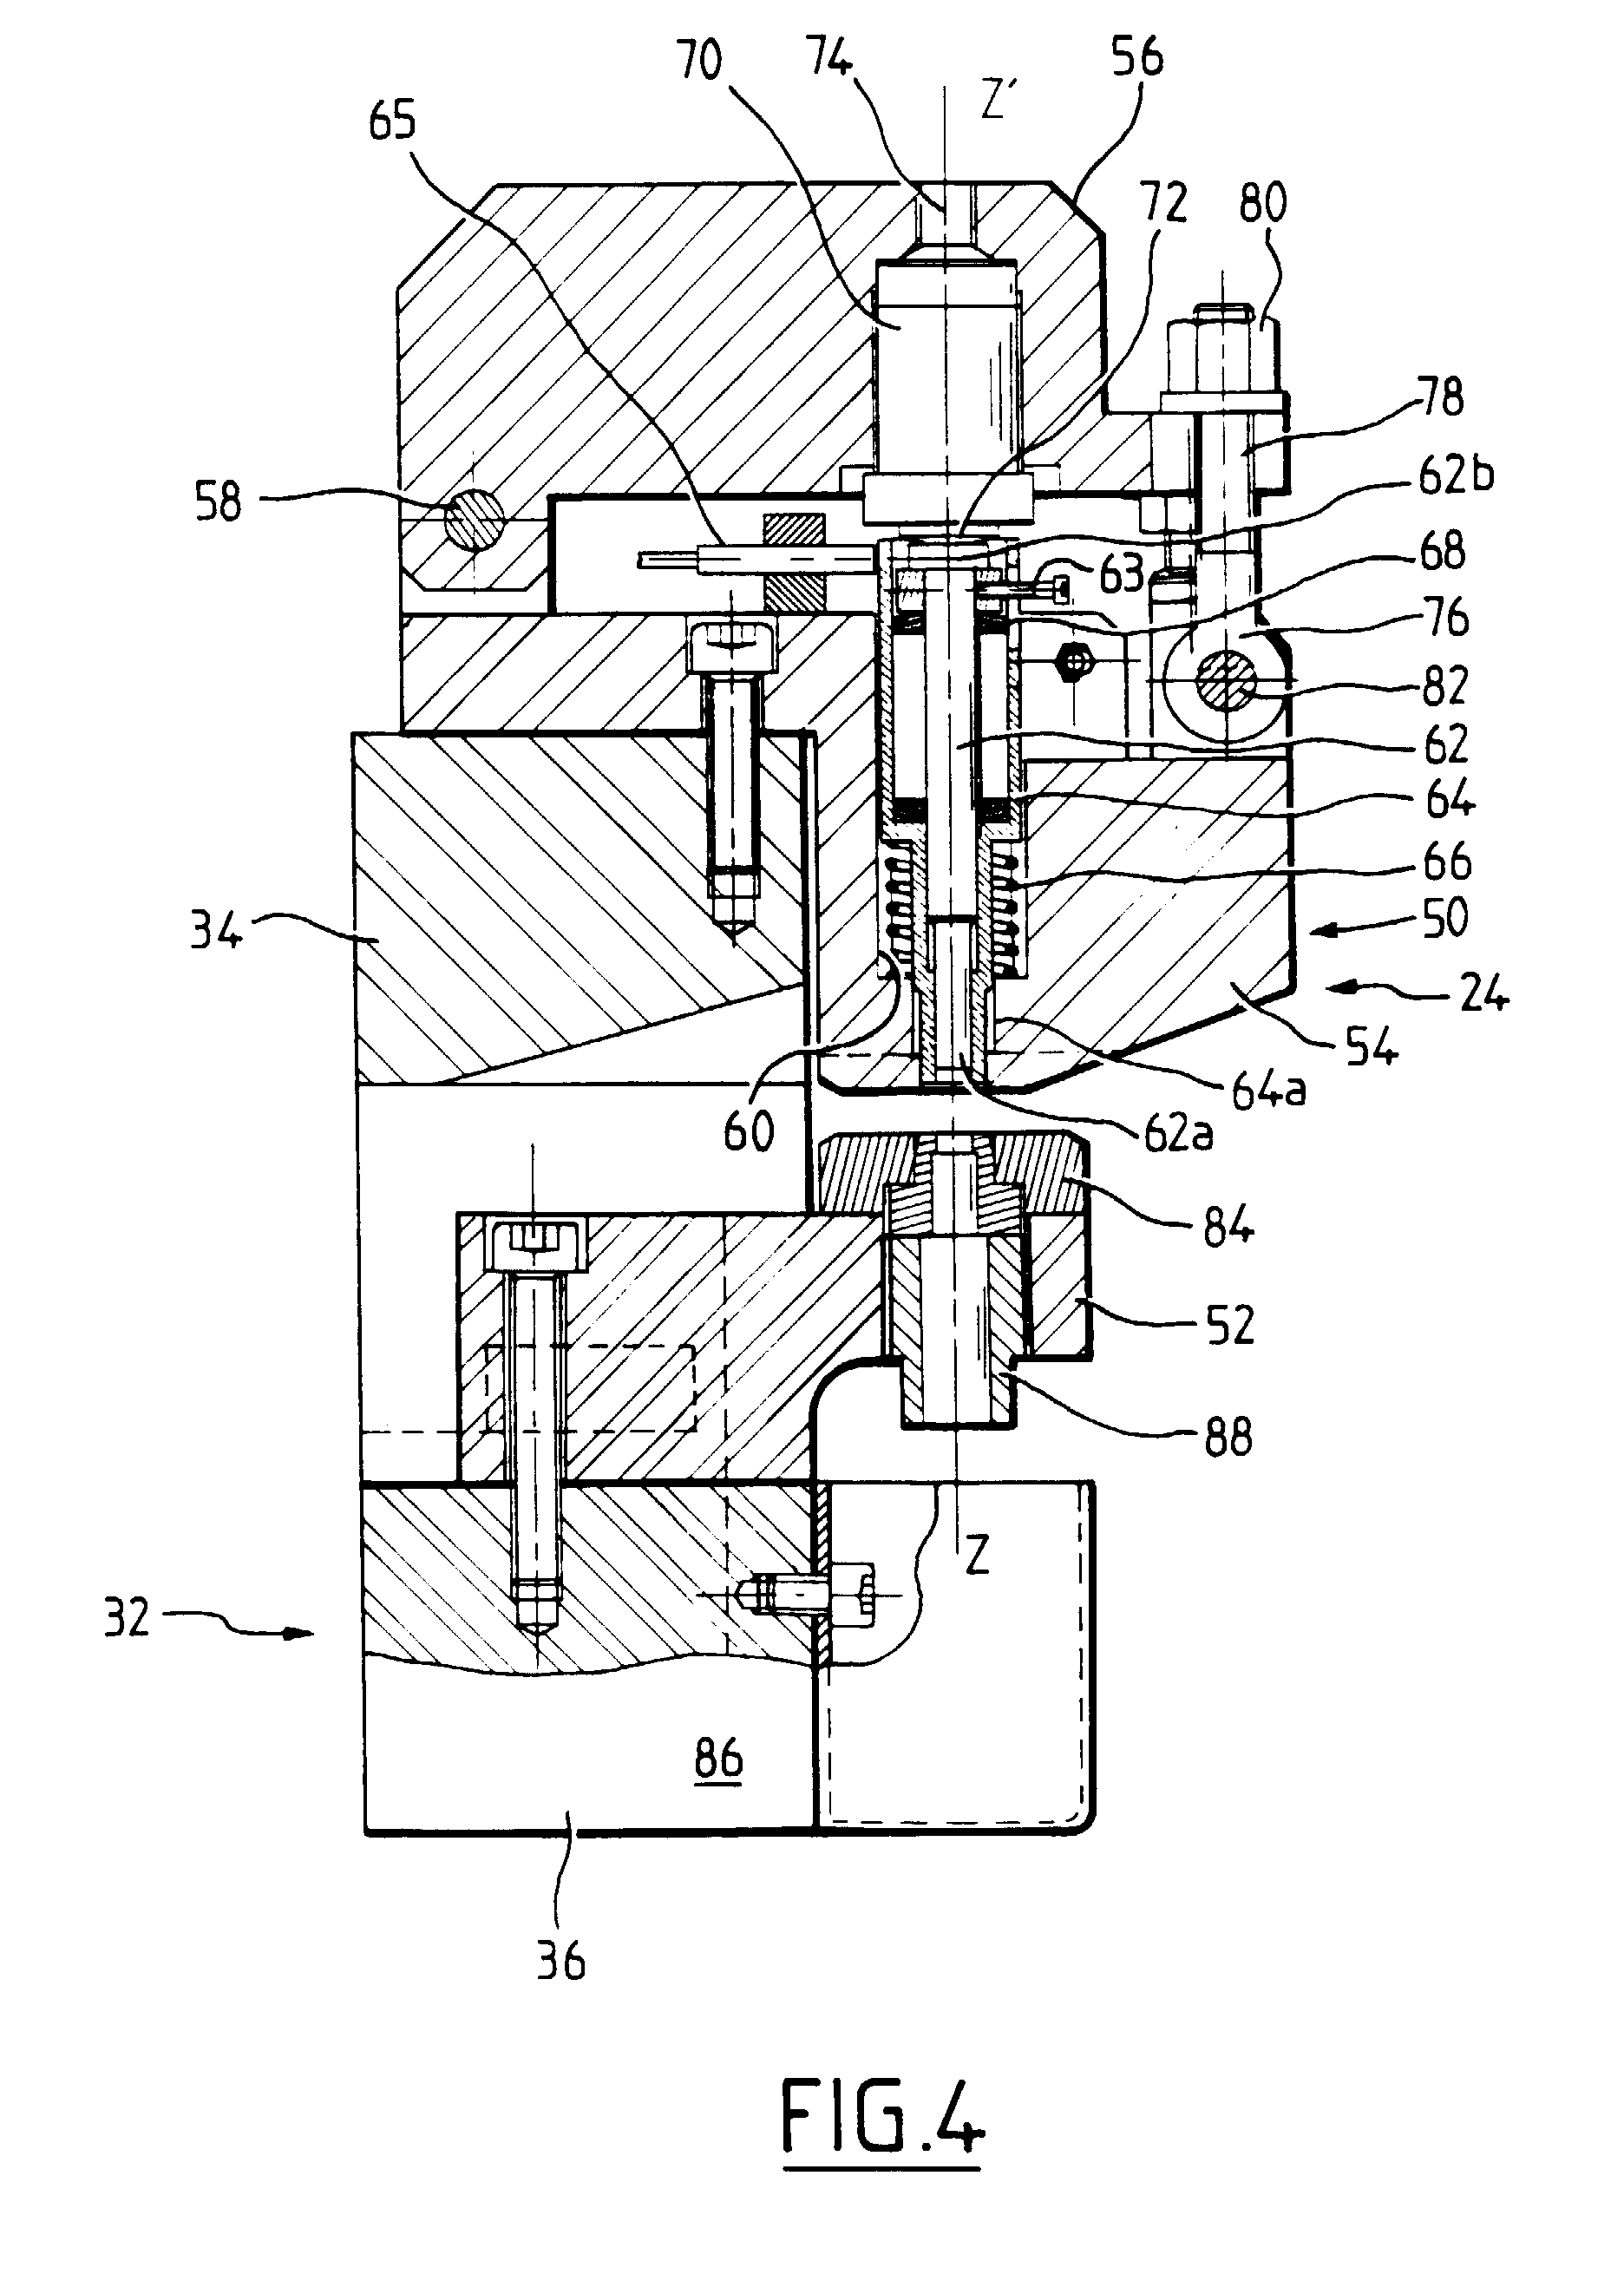 patent ep0819504a1 - apparatus for punching printed circuit boards